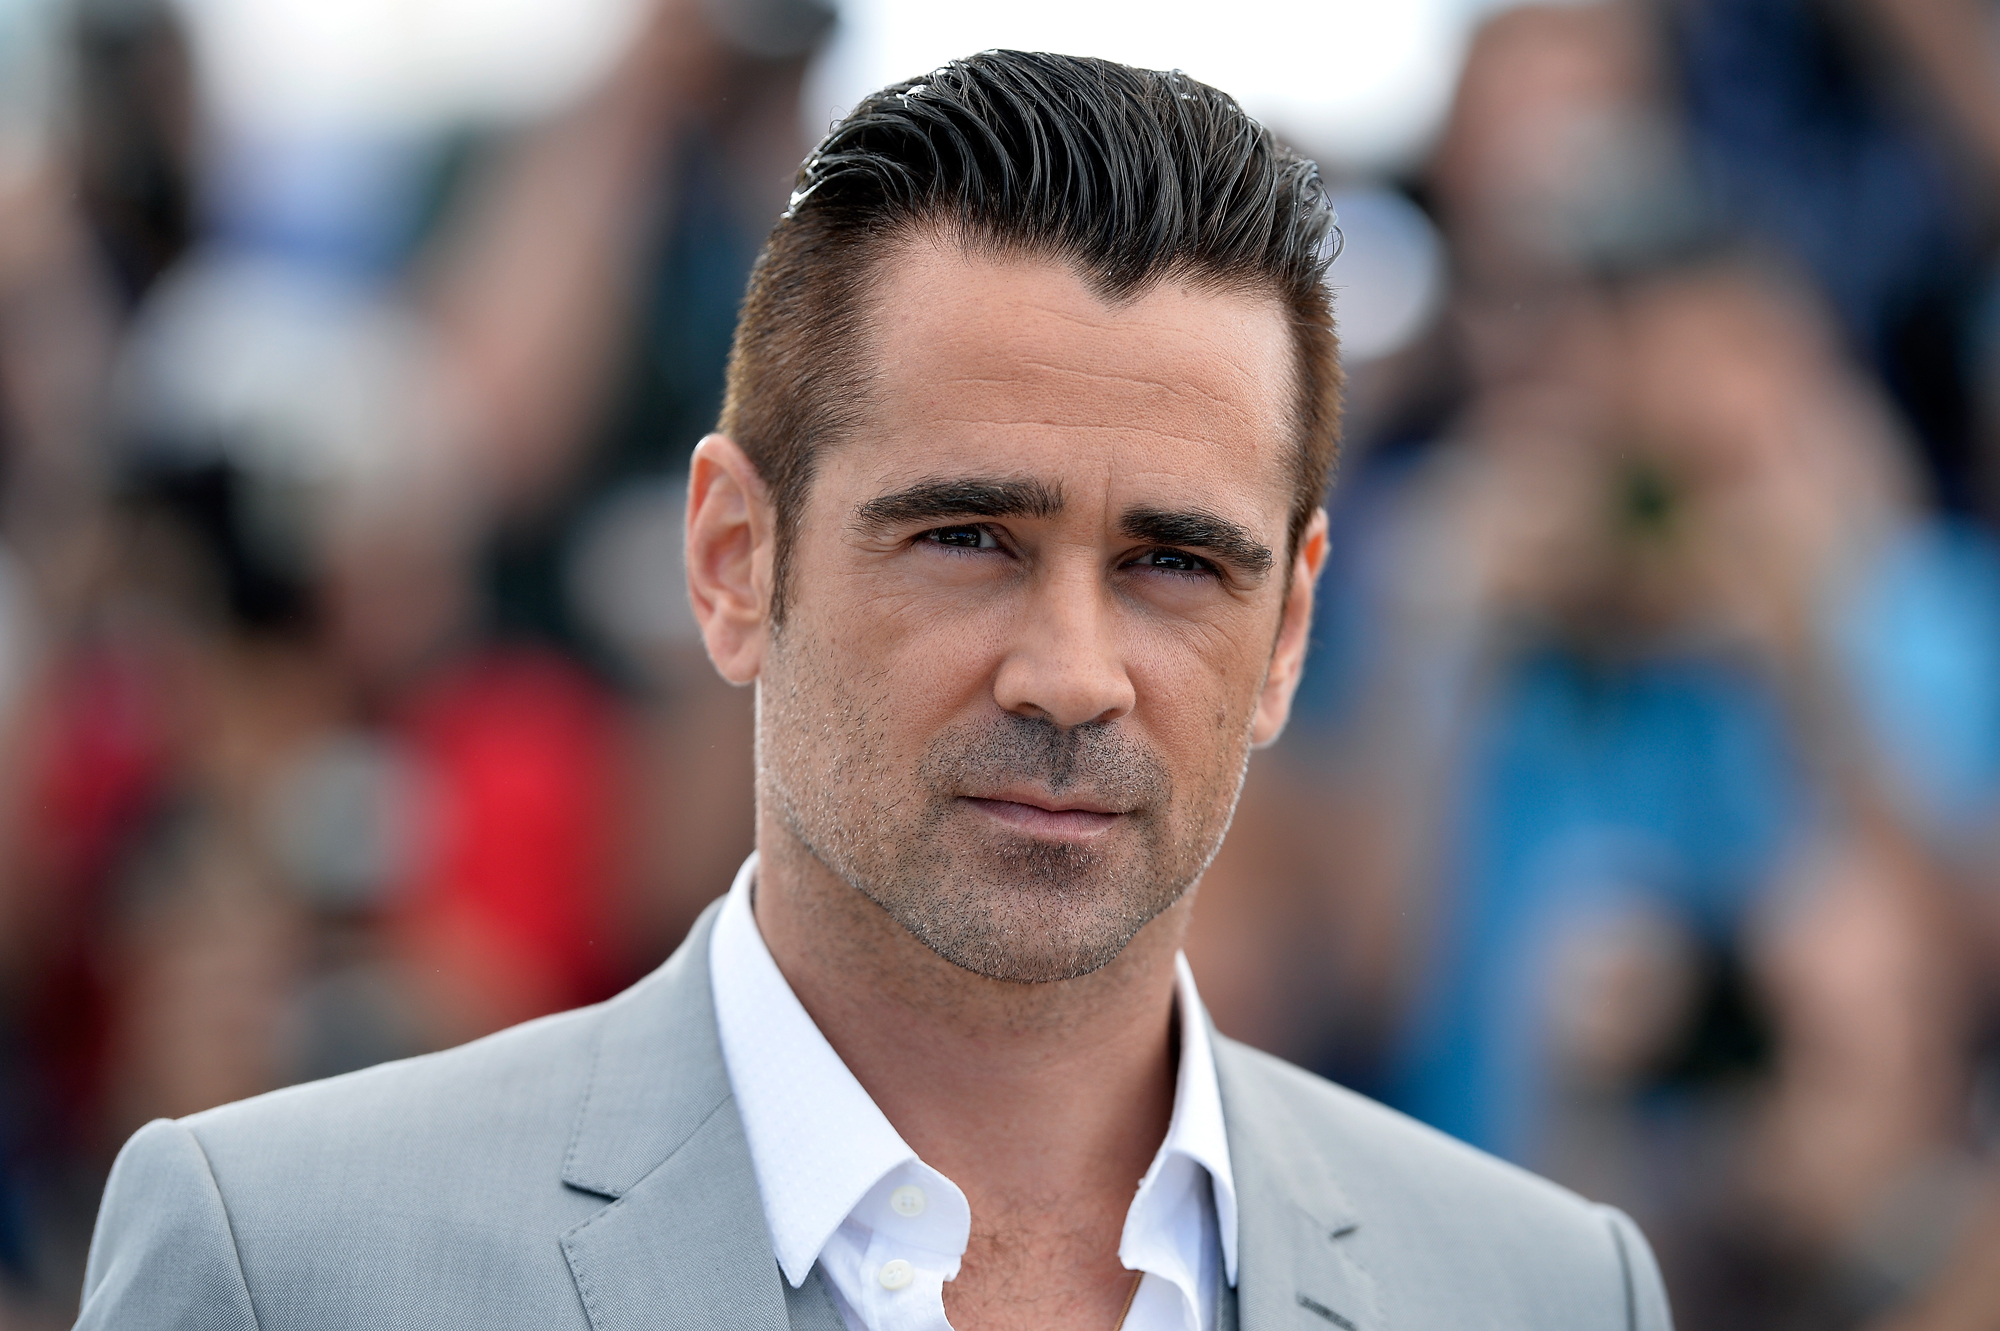 Colin Farrell Just Checked Himself Into Rehab